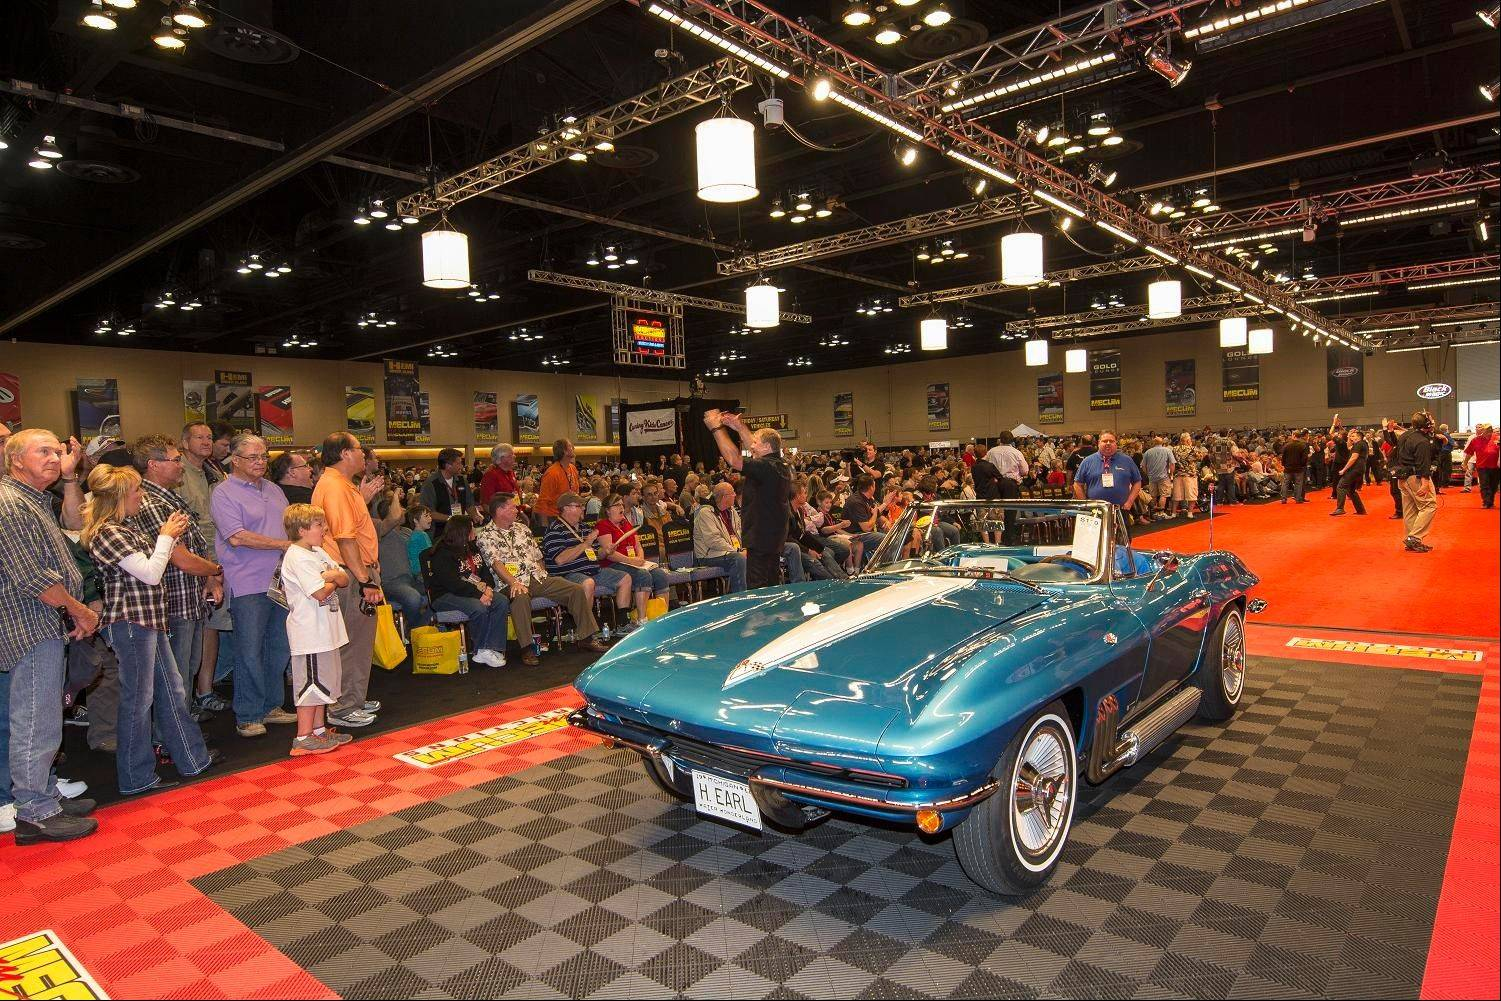 The 1963 Chevrolet Corvette presented by General Motors to lead designer Harley J. Earl sold for $1.5 million.